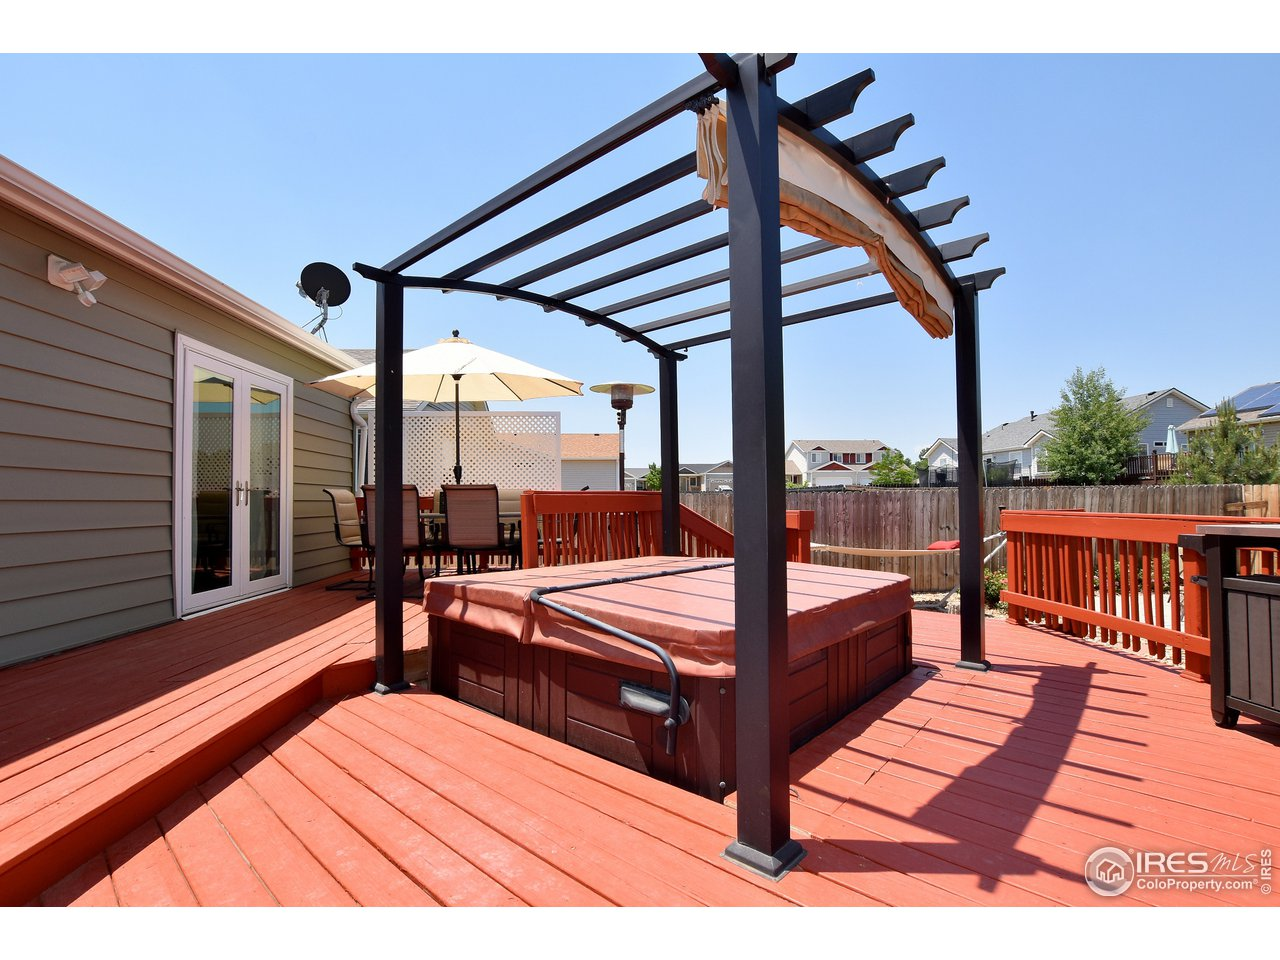 Expansive Deck with Hot Tub with shade